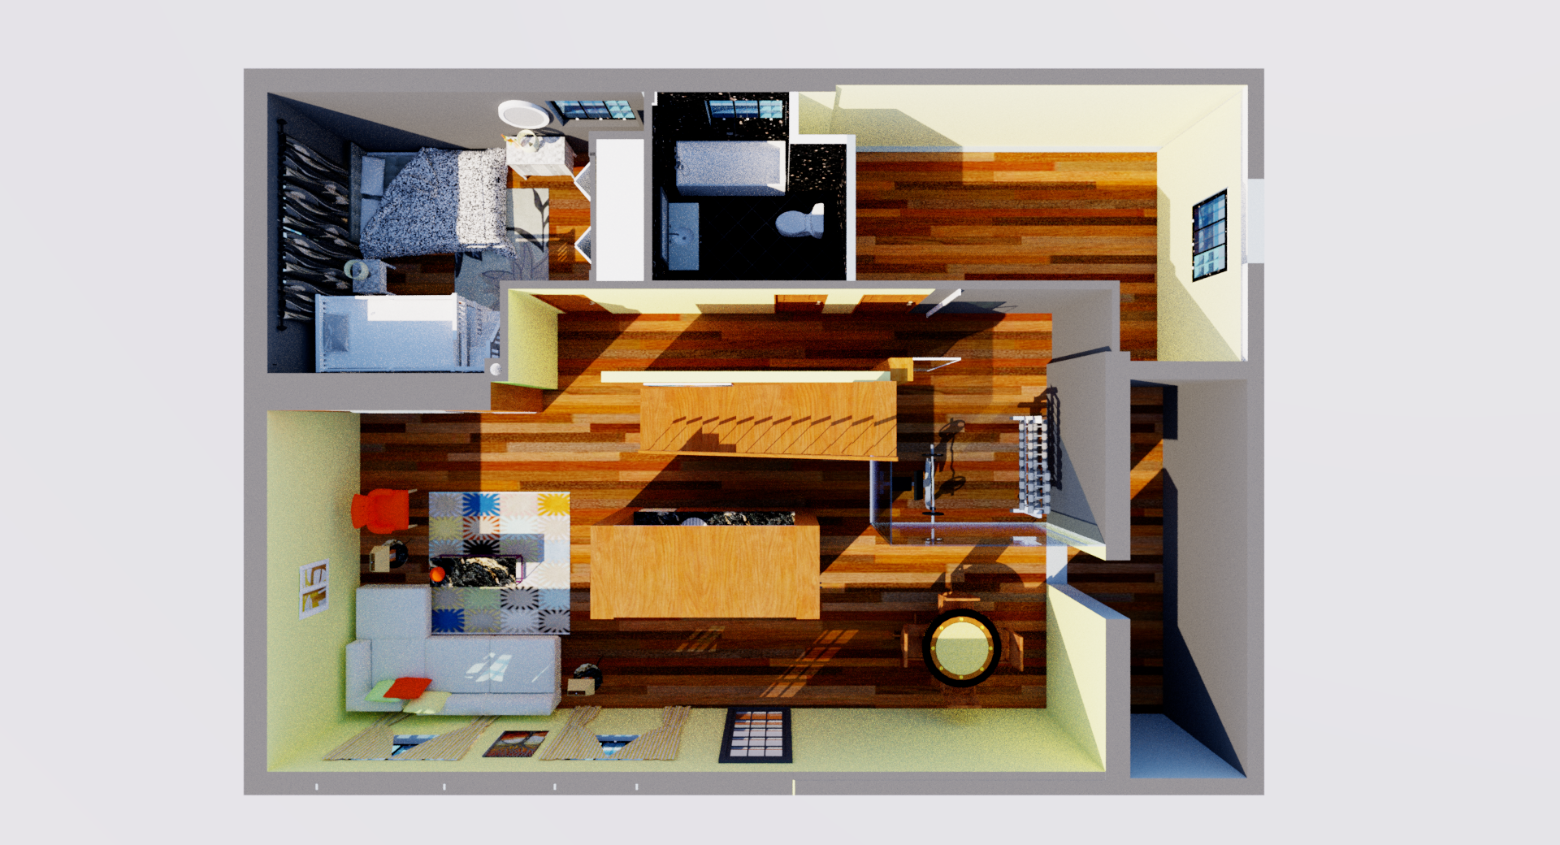 Basement - 3D Plan View